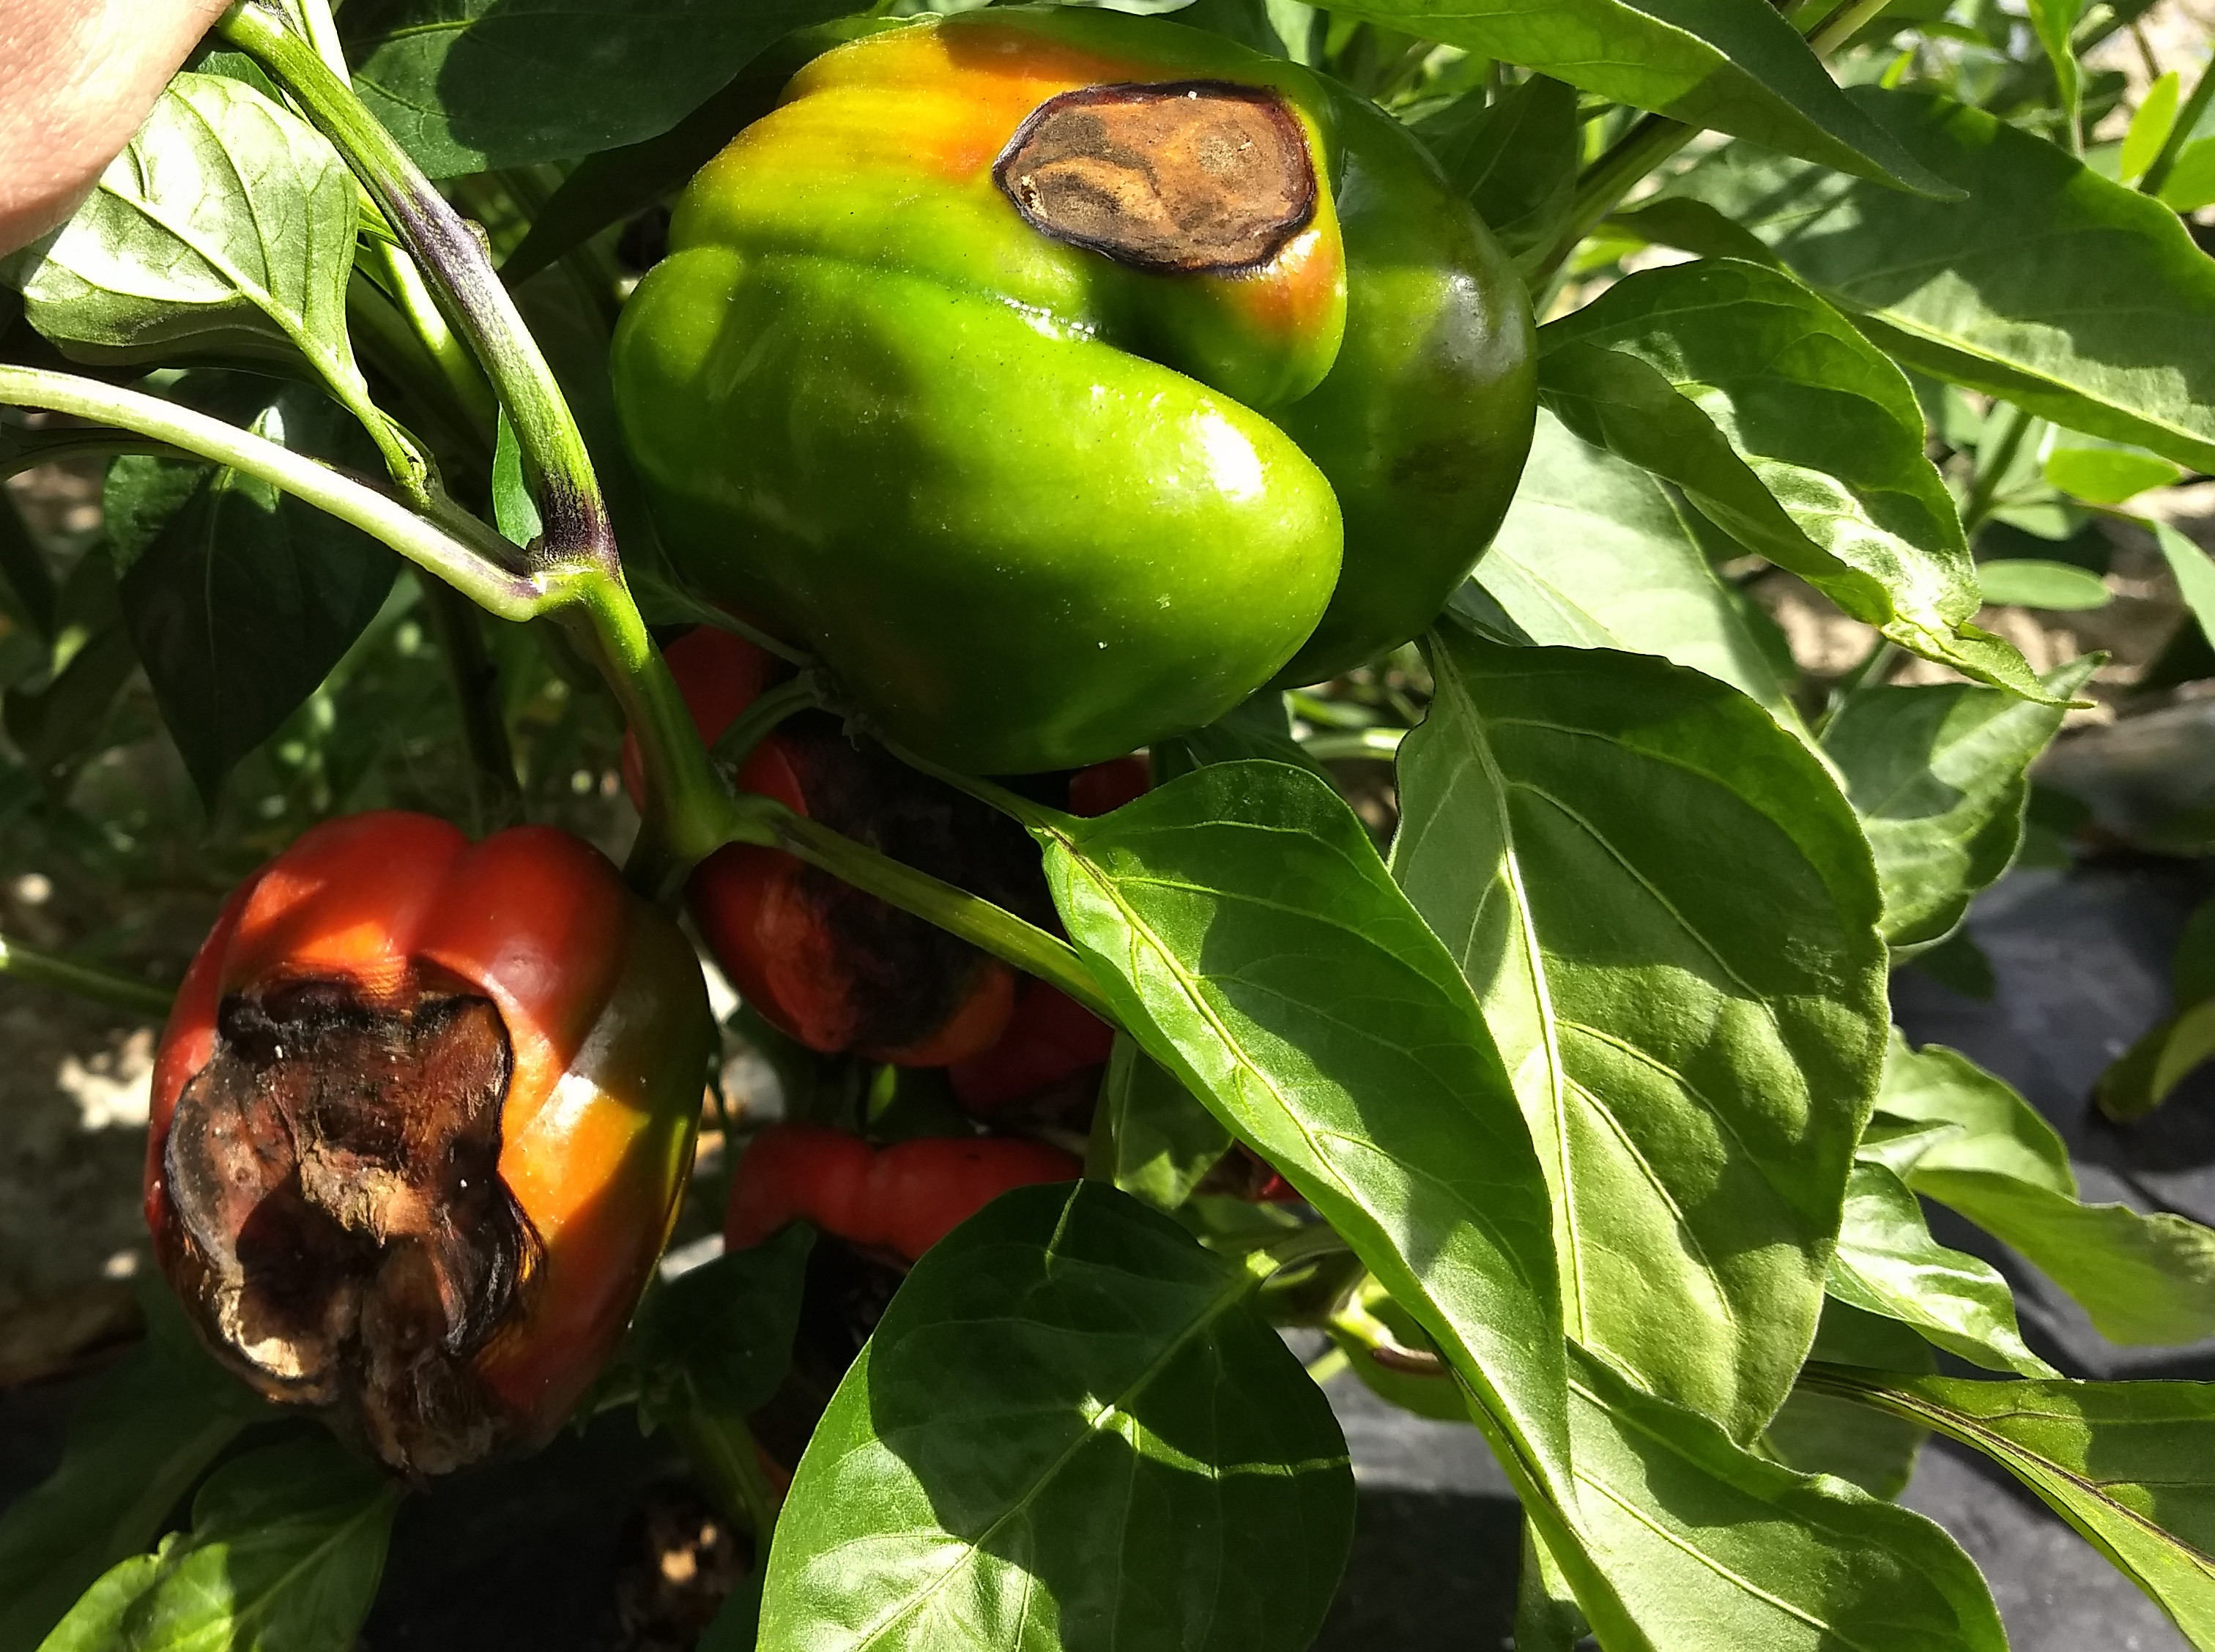 Blossom end rot, sunscald, and Anthracnose in bell peppers are confusing to tell apart.